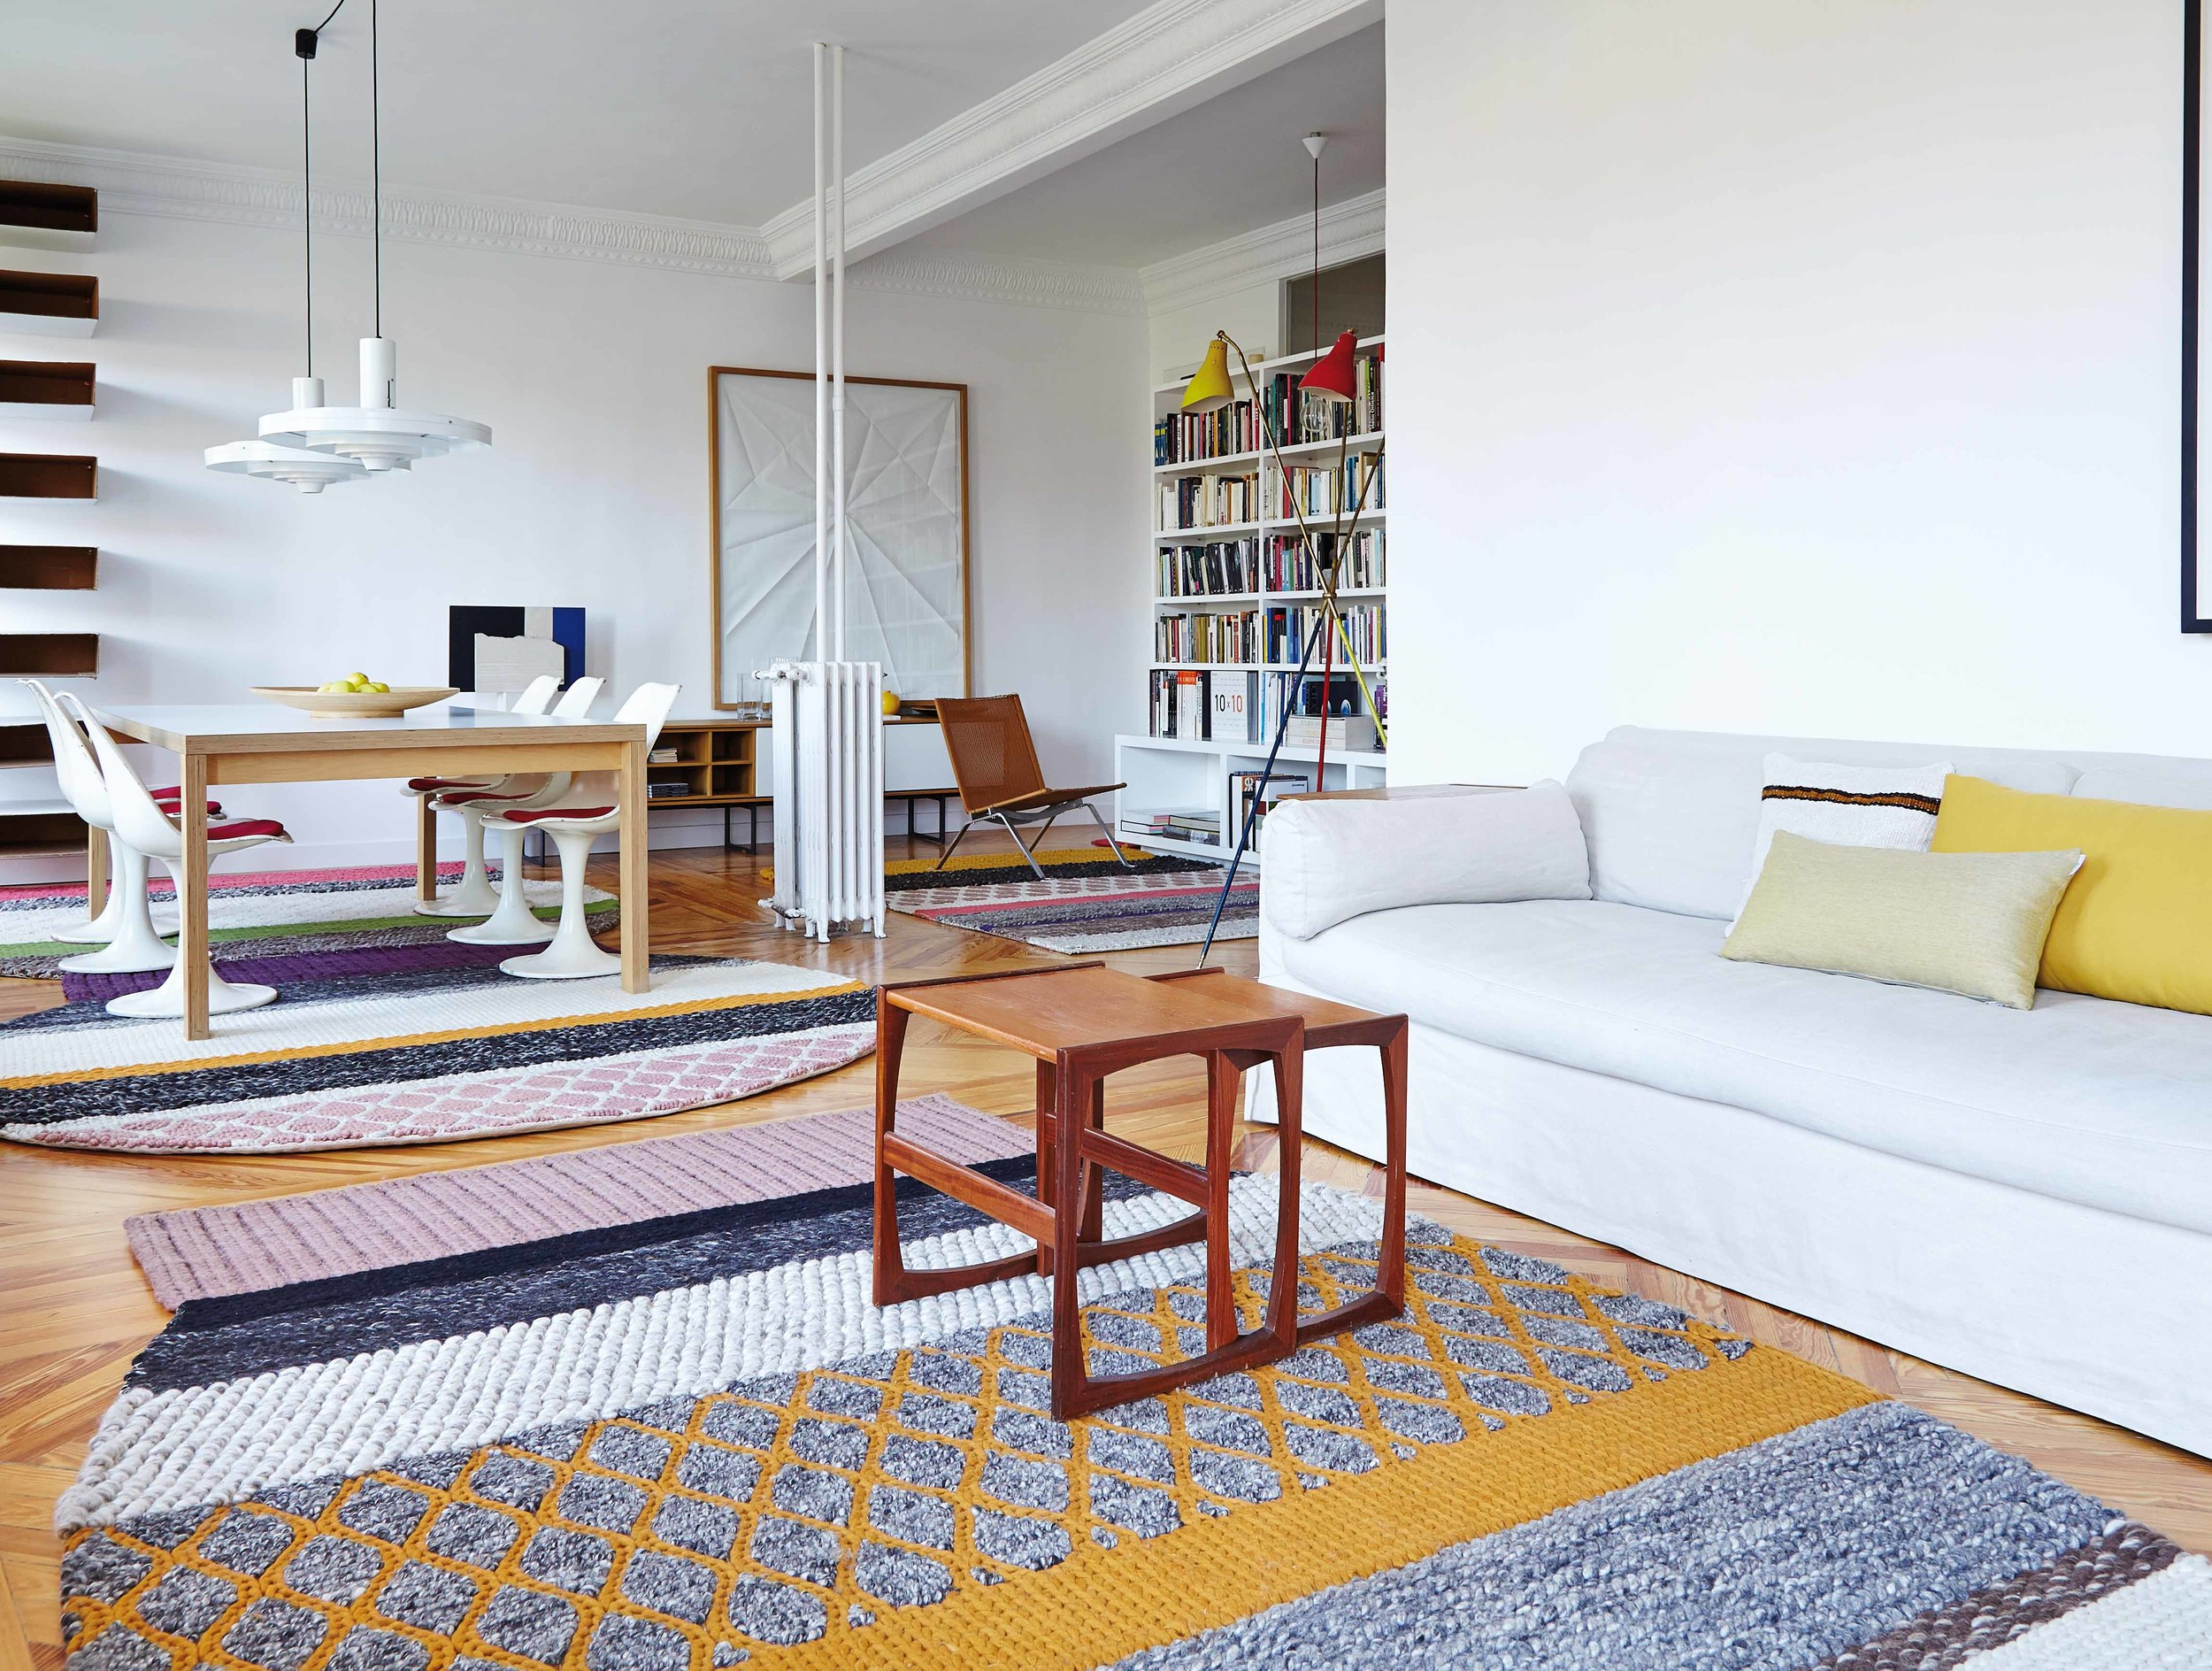 Mangas Original rugs and ottomans are available at Morlen Sinoway